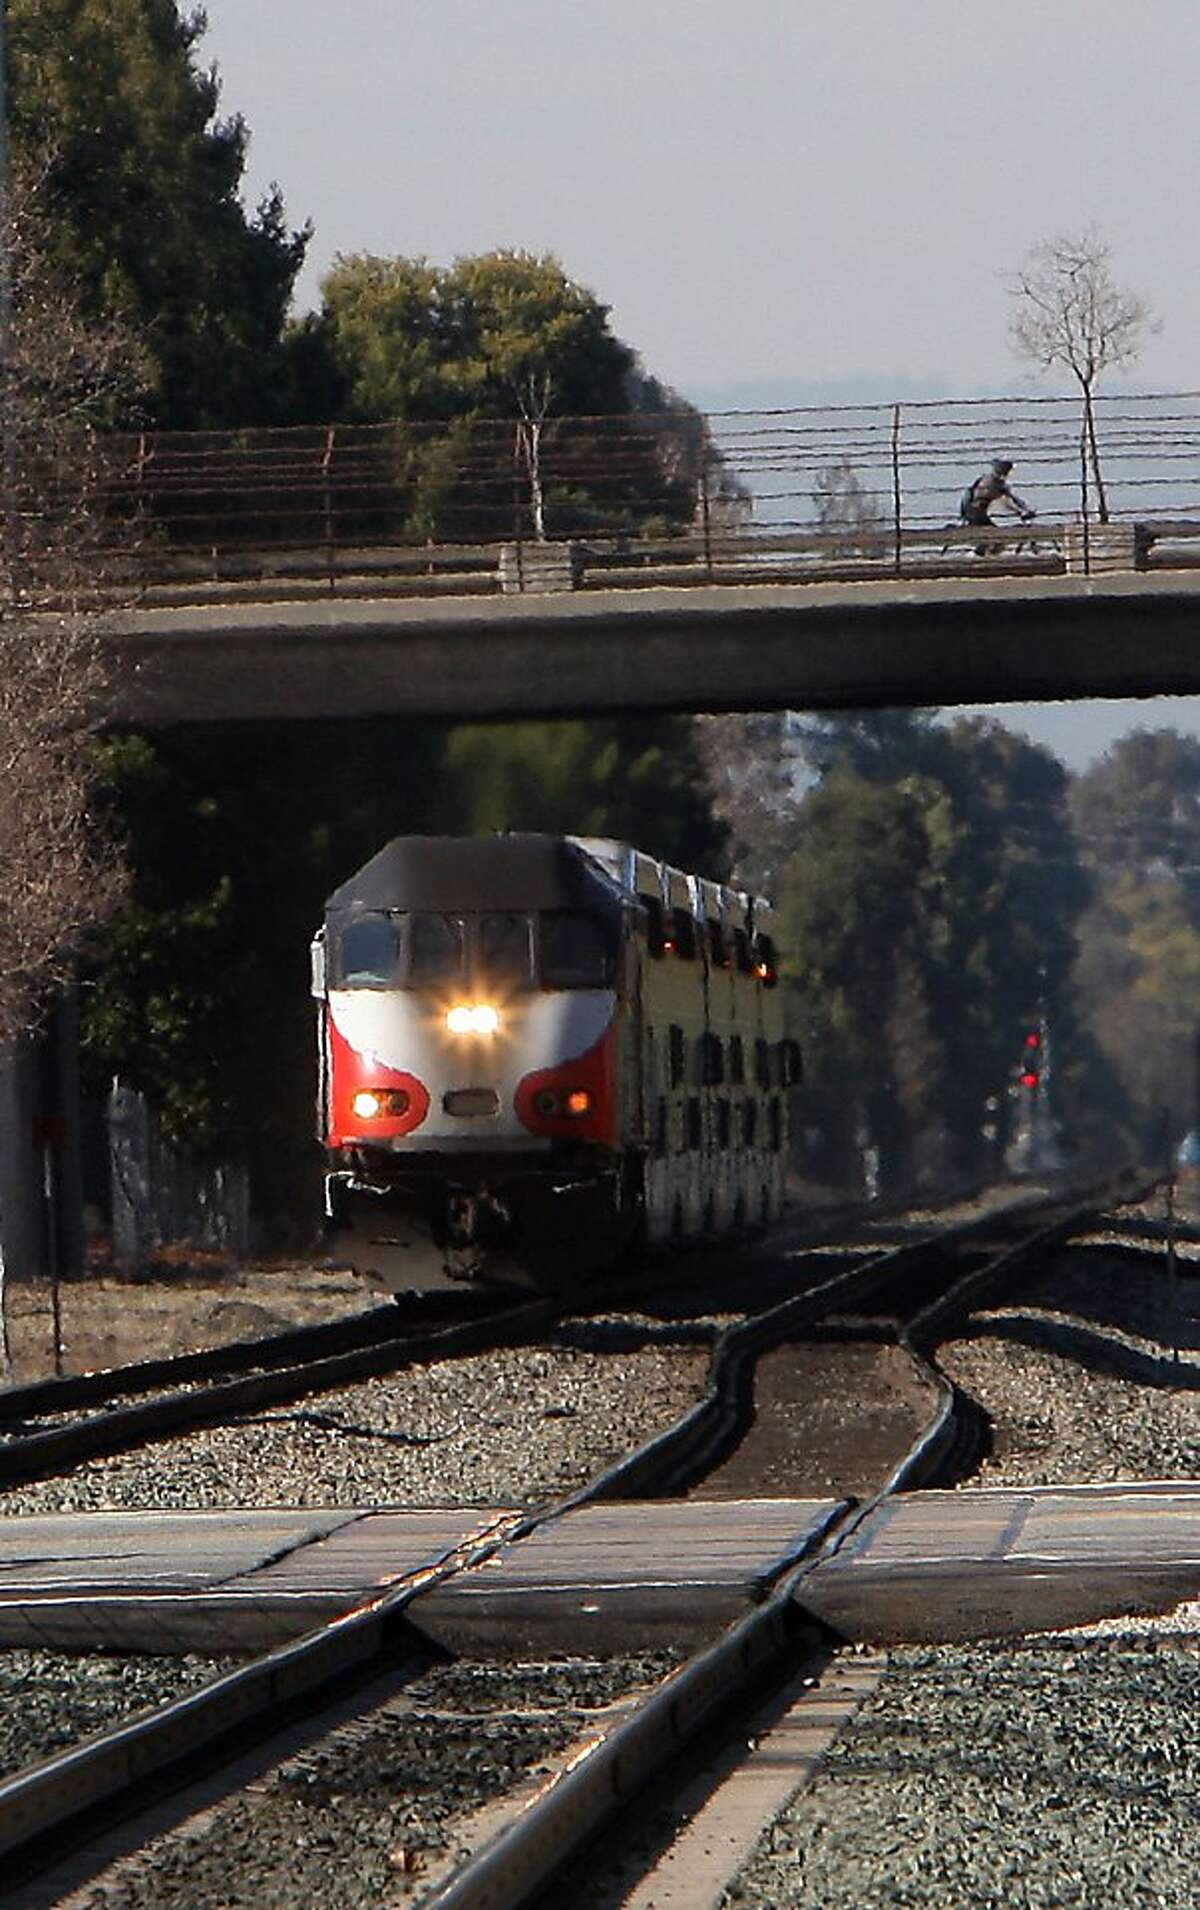 A southbound Caltrain arriving at the station in Mountain View, Calif., on Thursday, February 9, 2012. Caltrain between San Francisco to San Jose is seeing electrified trains as a potential to the commuter rail line.